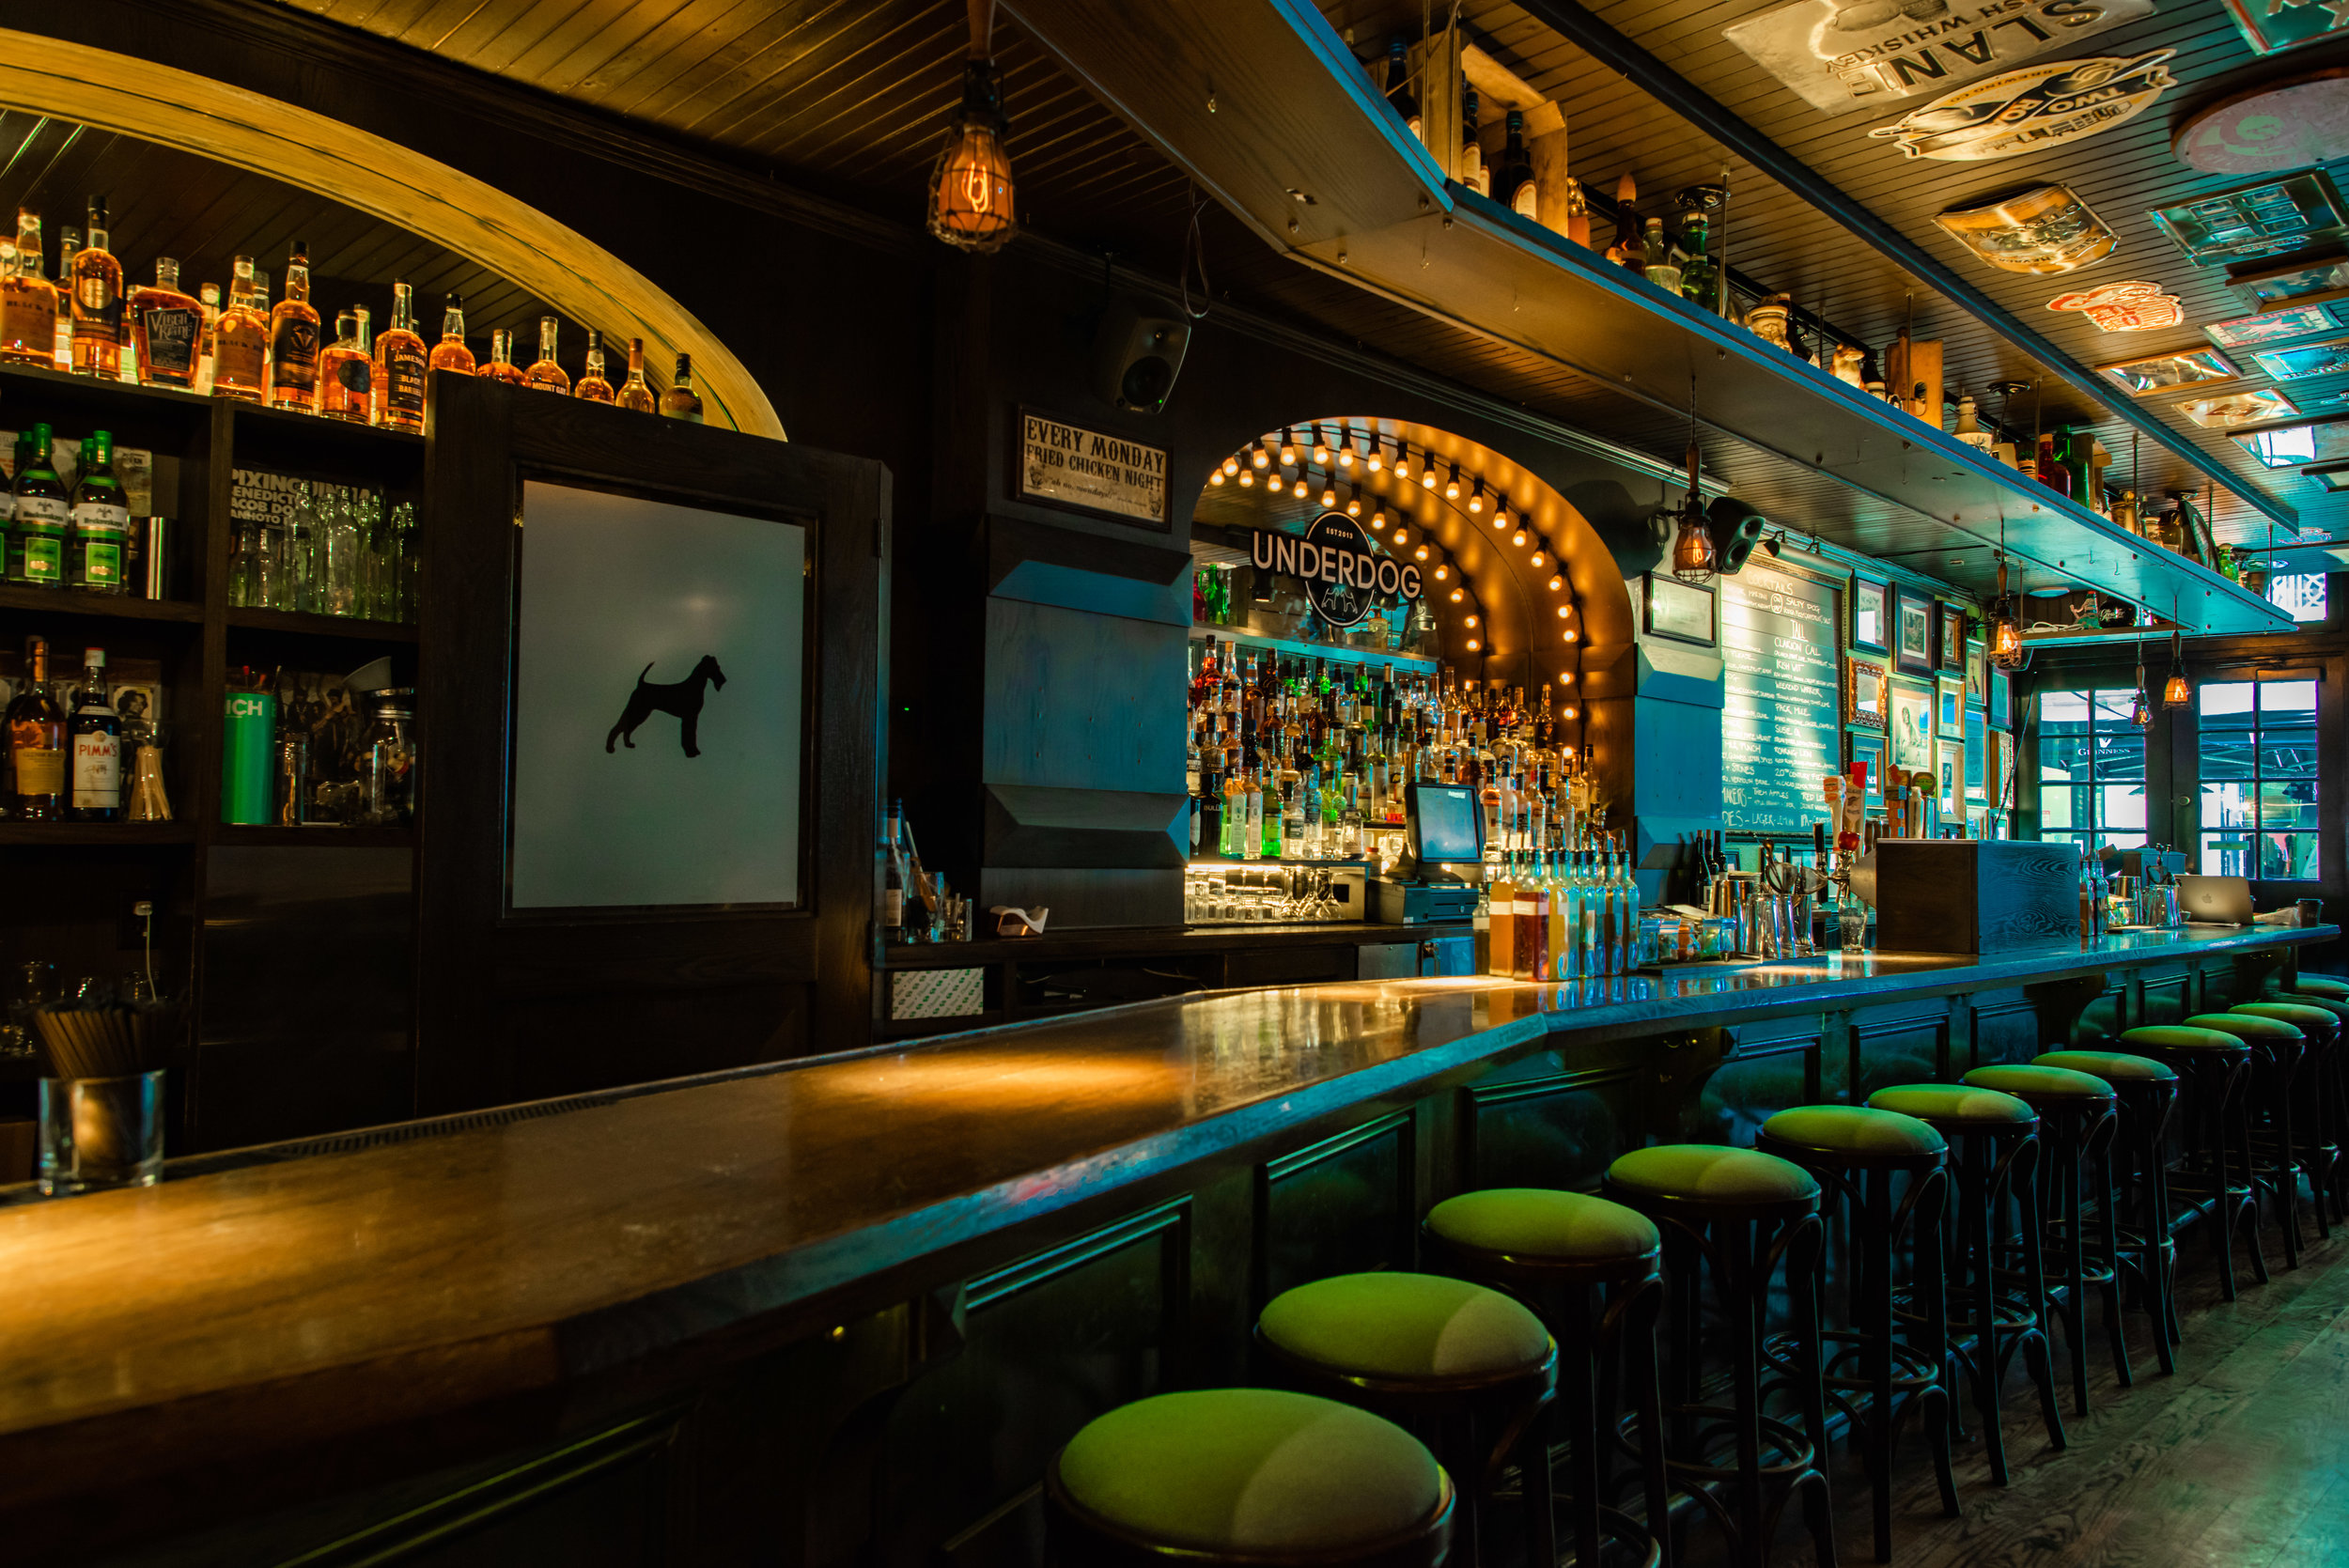 Underdog-Bar-Nyc-Fidi-Cocktails-Beer-Burgers